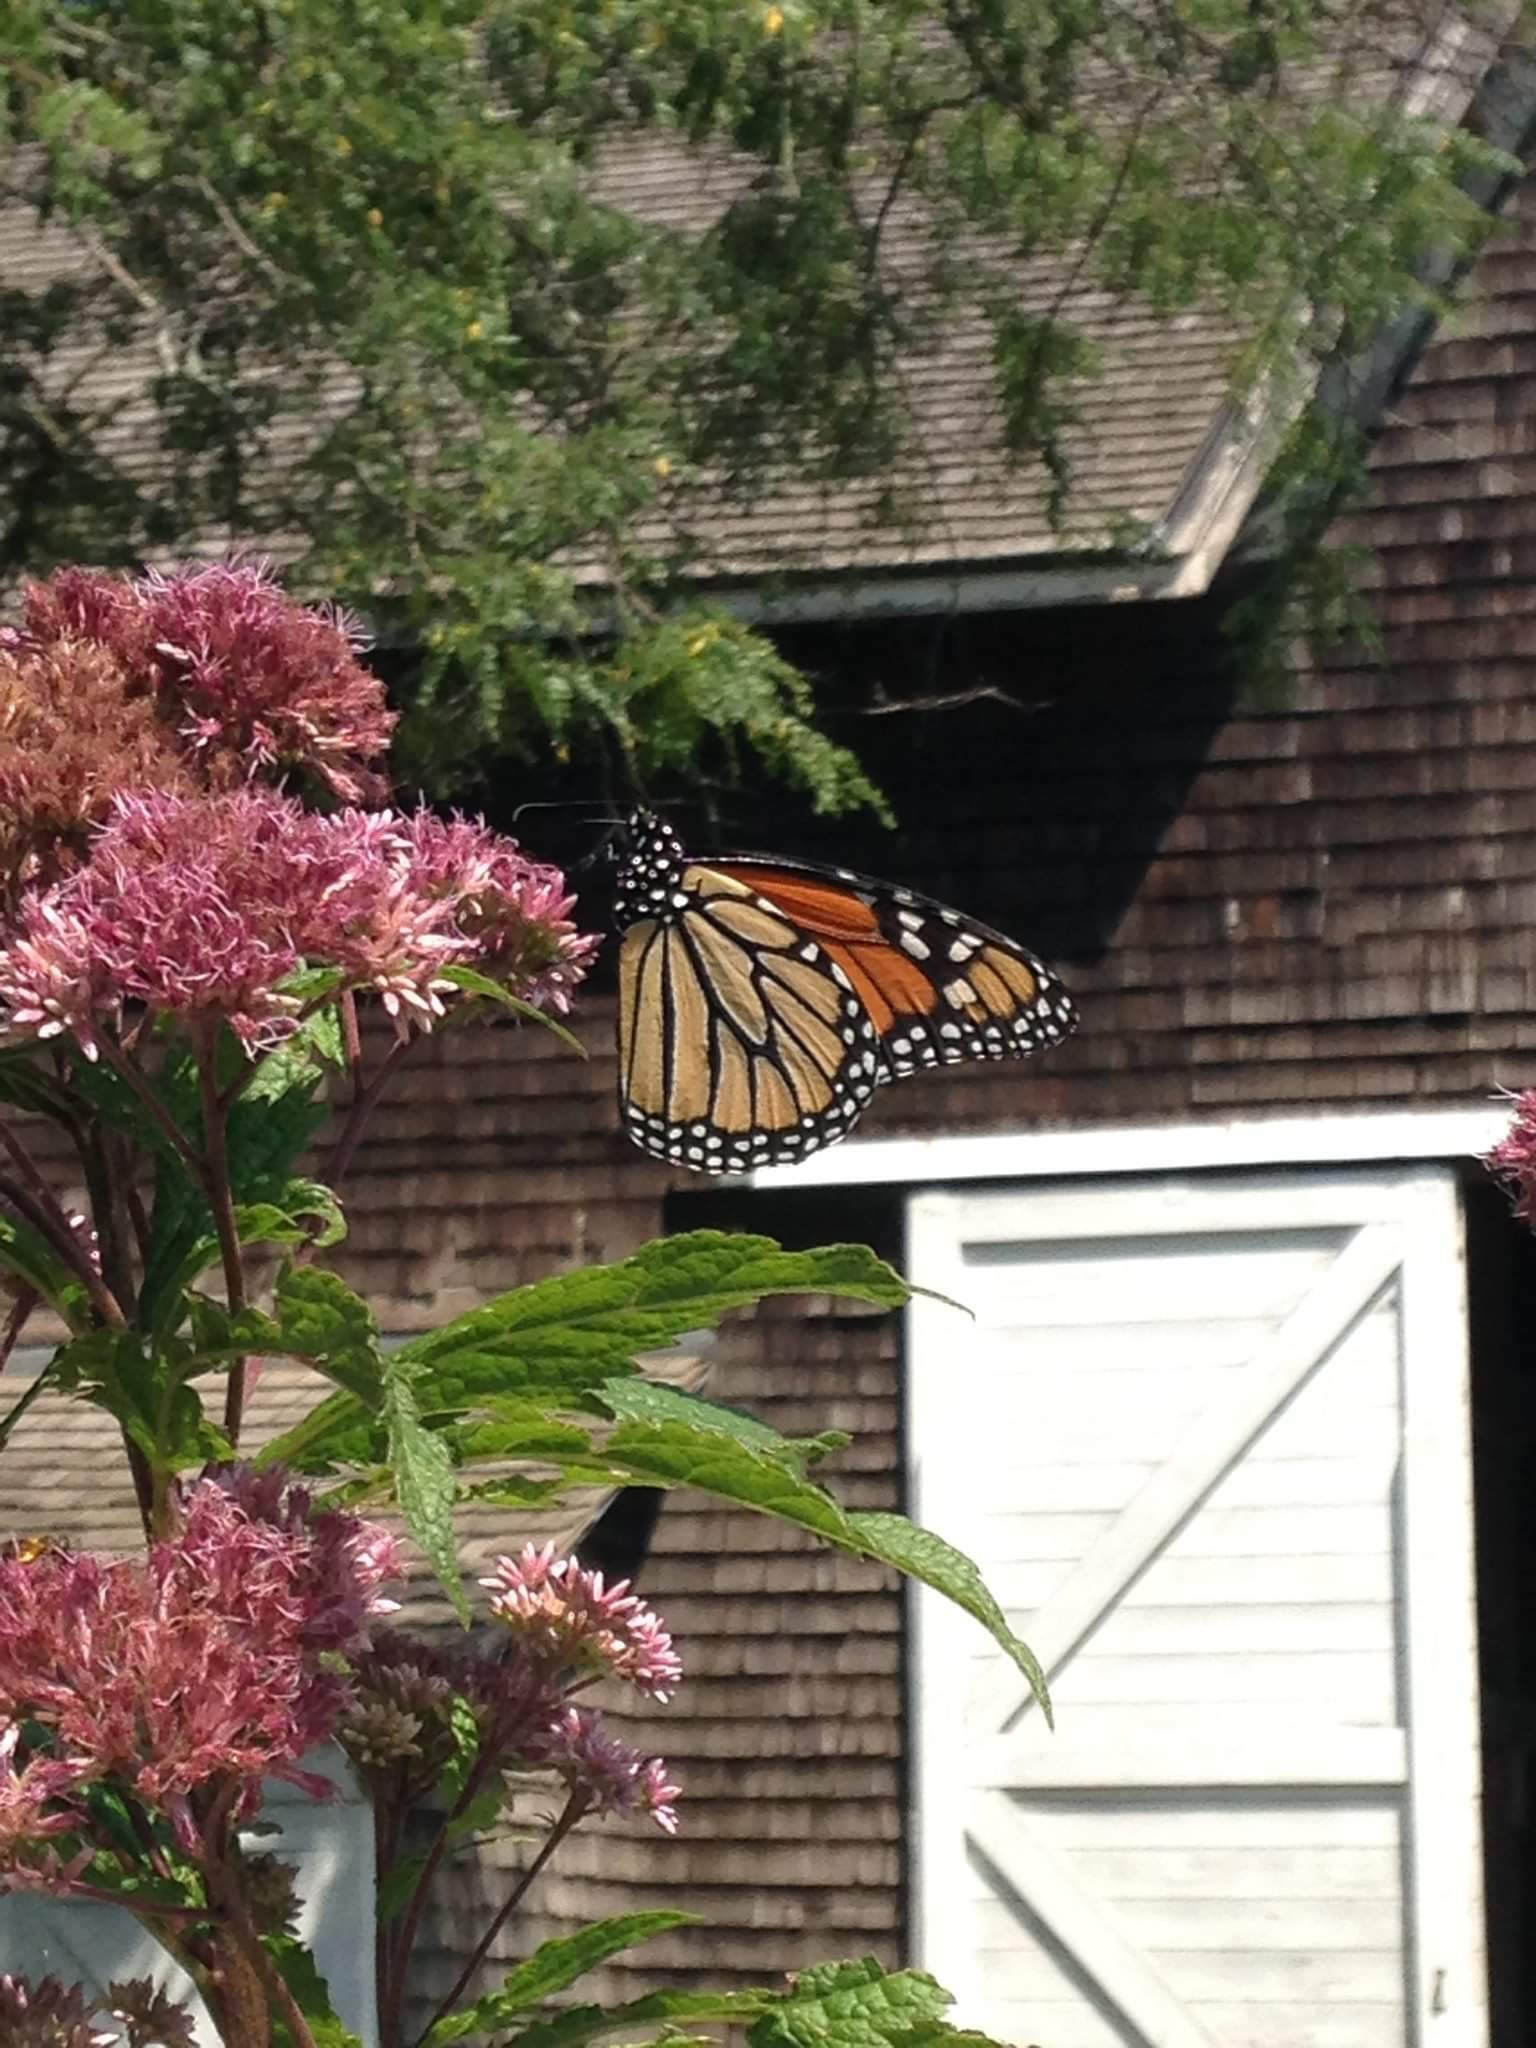 Joe Pye weed with monarch butterfly. BRIAN SMITH